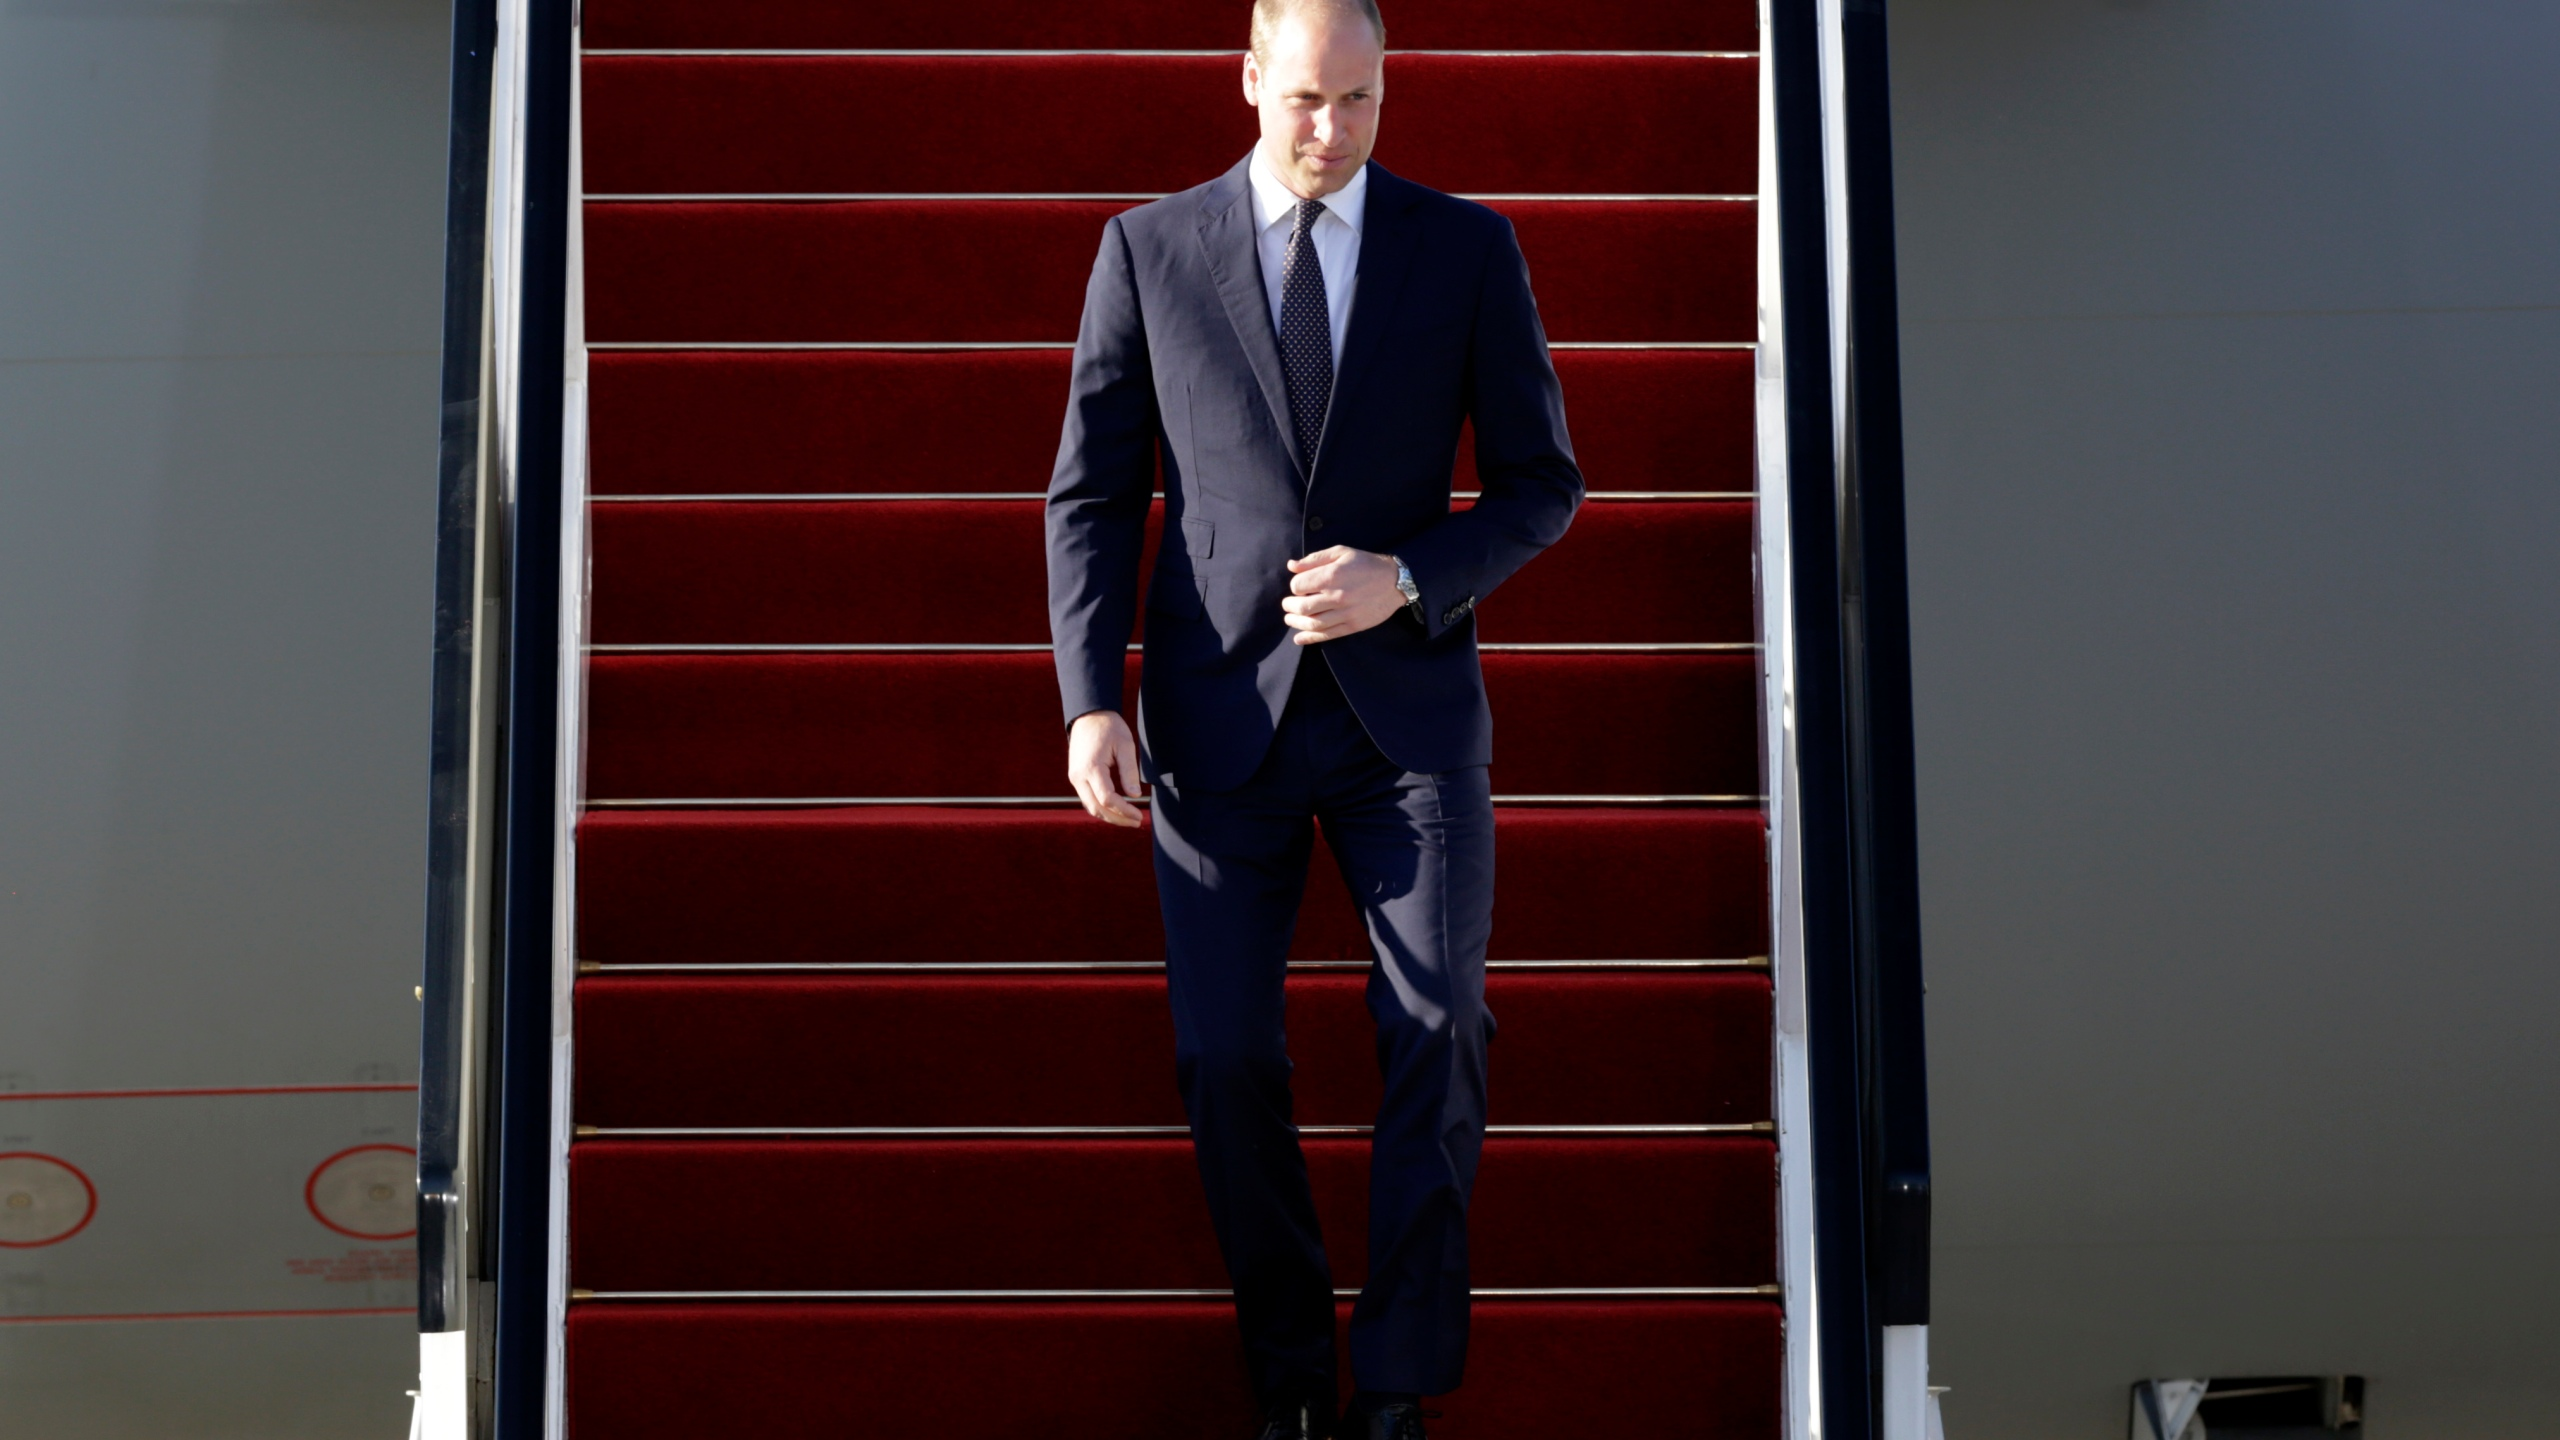 Mideast_Prince_William_49791-159532.jpg93846846